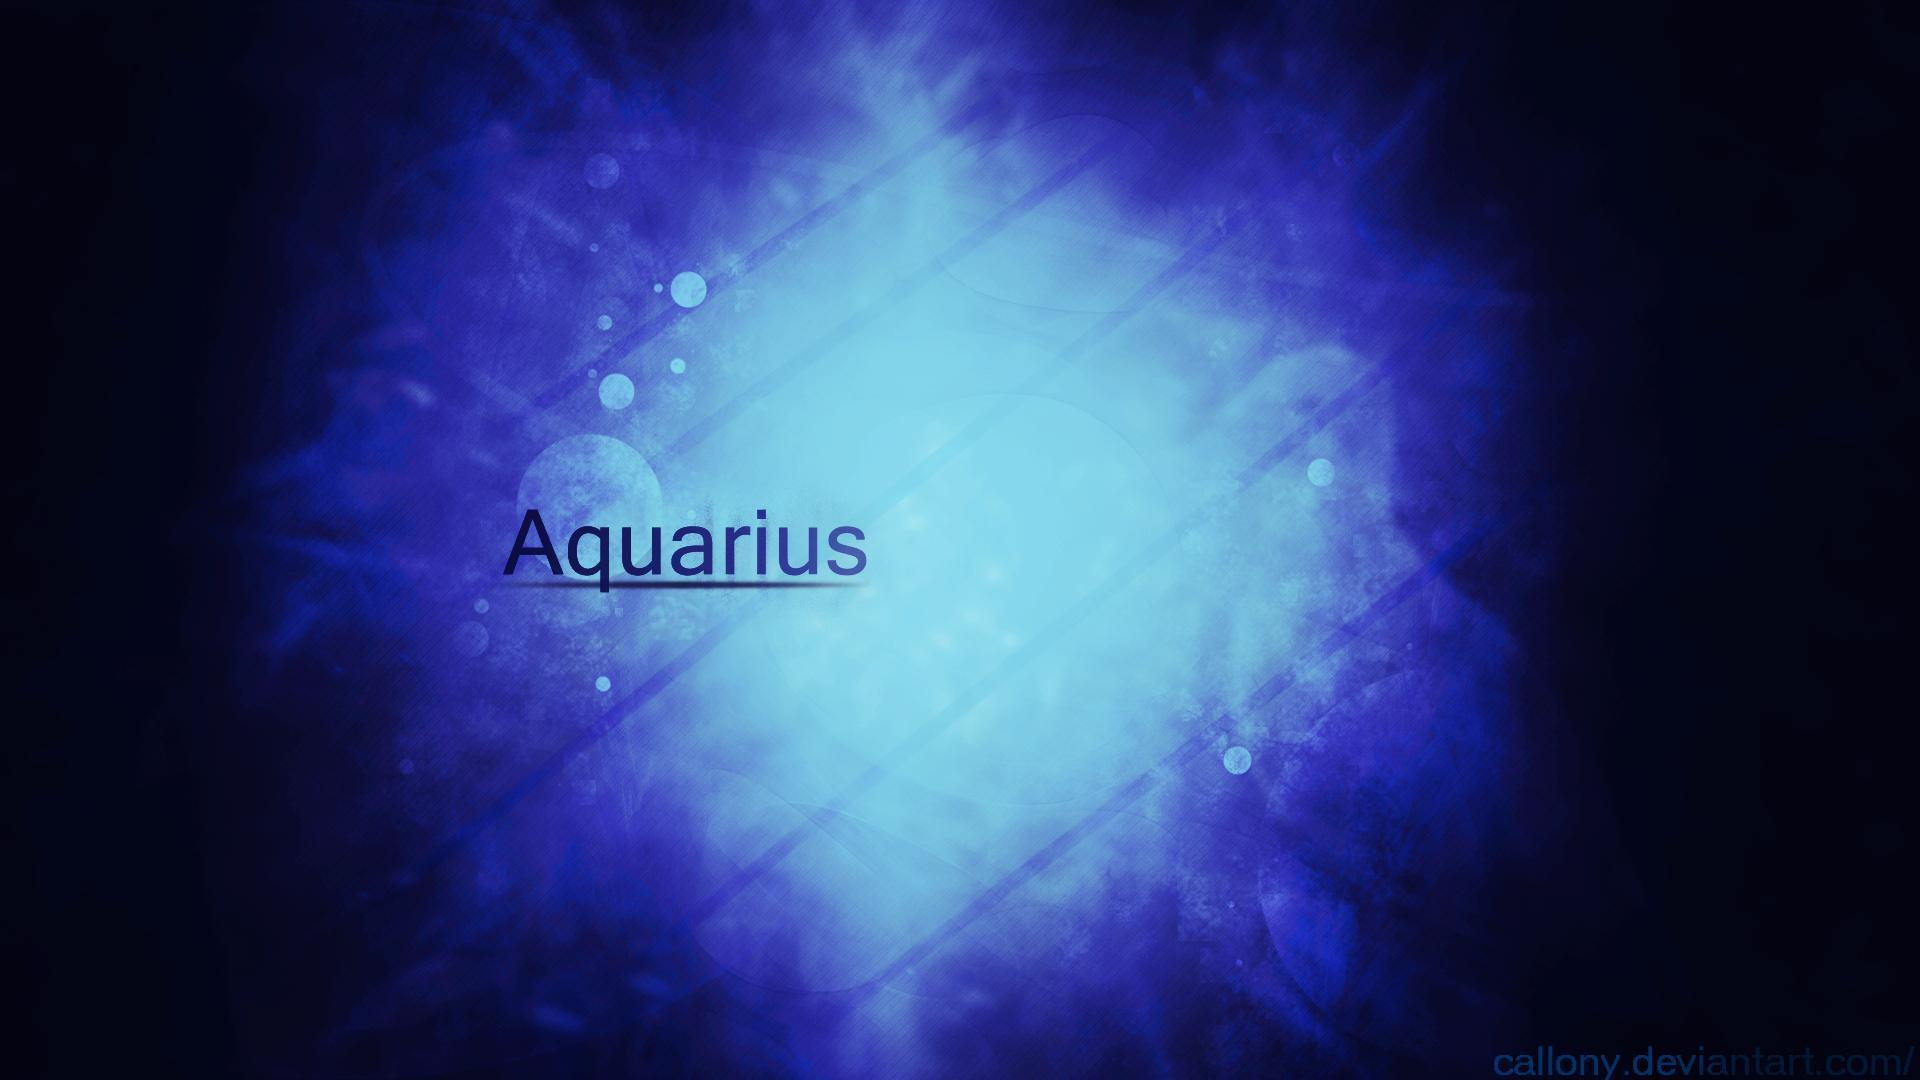 aquarius flower wallpaper hd - photo #7